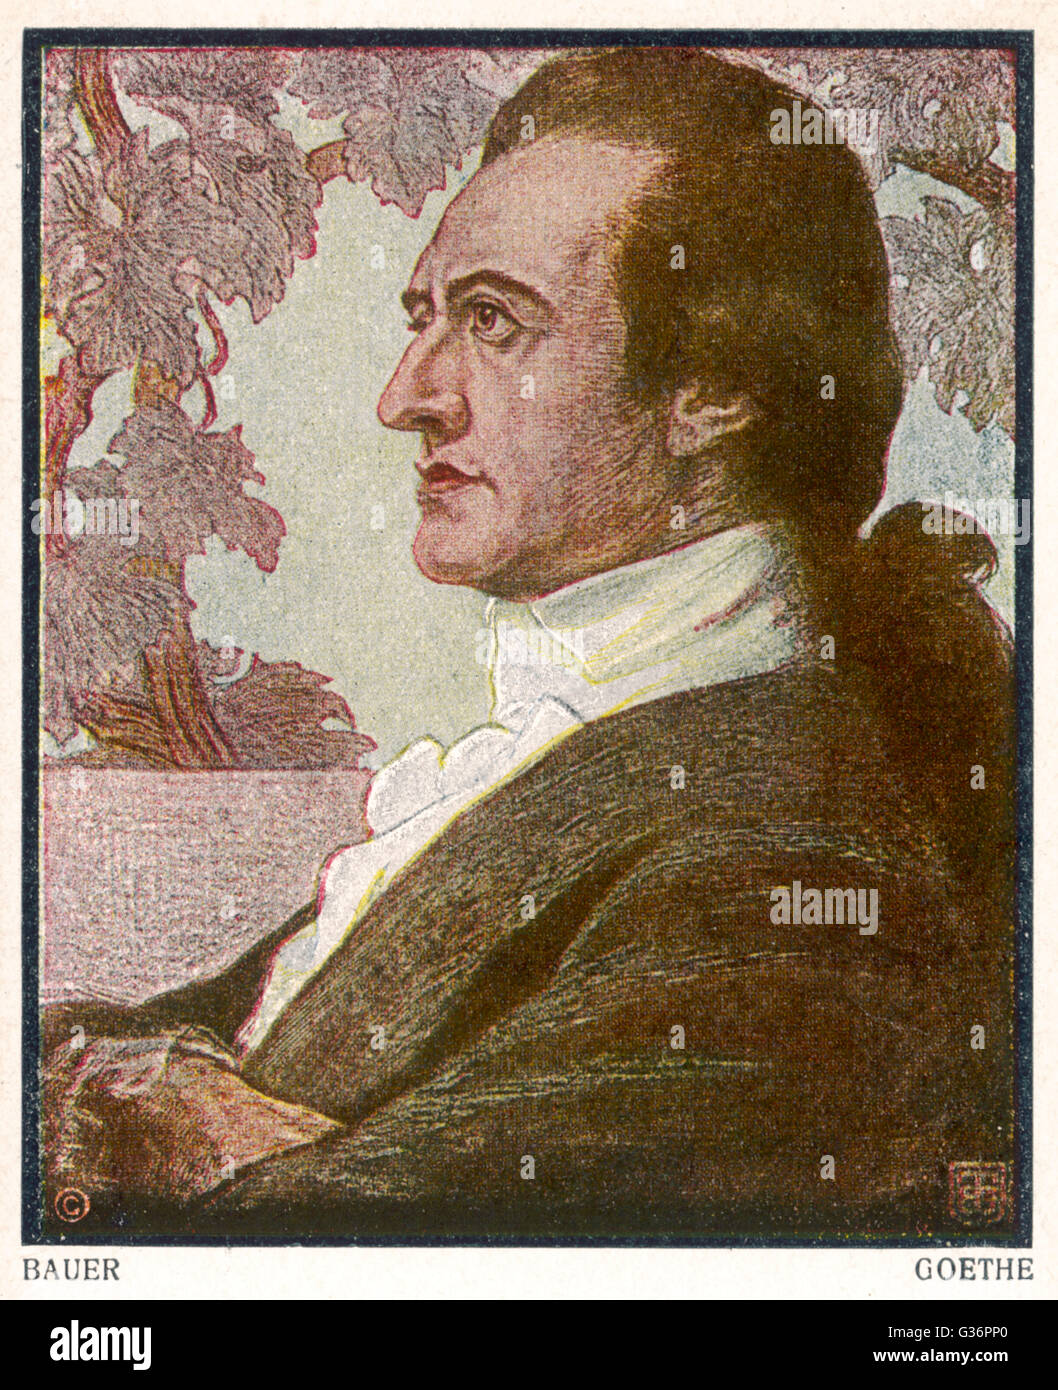 Johann Wolfgang von Goethe, German writer and polymath.  His writings include poetry, drama, literature, theology, Stock Photo